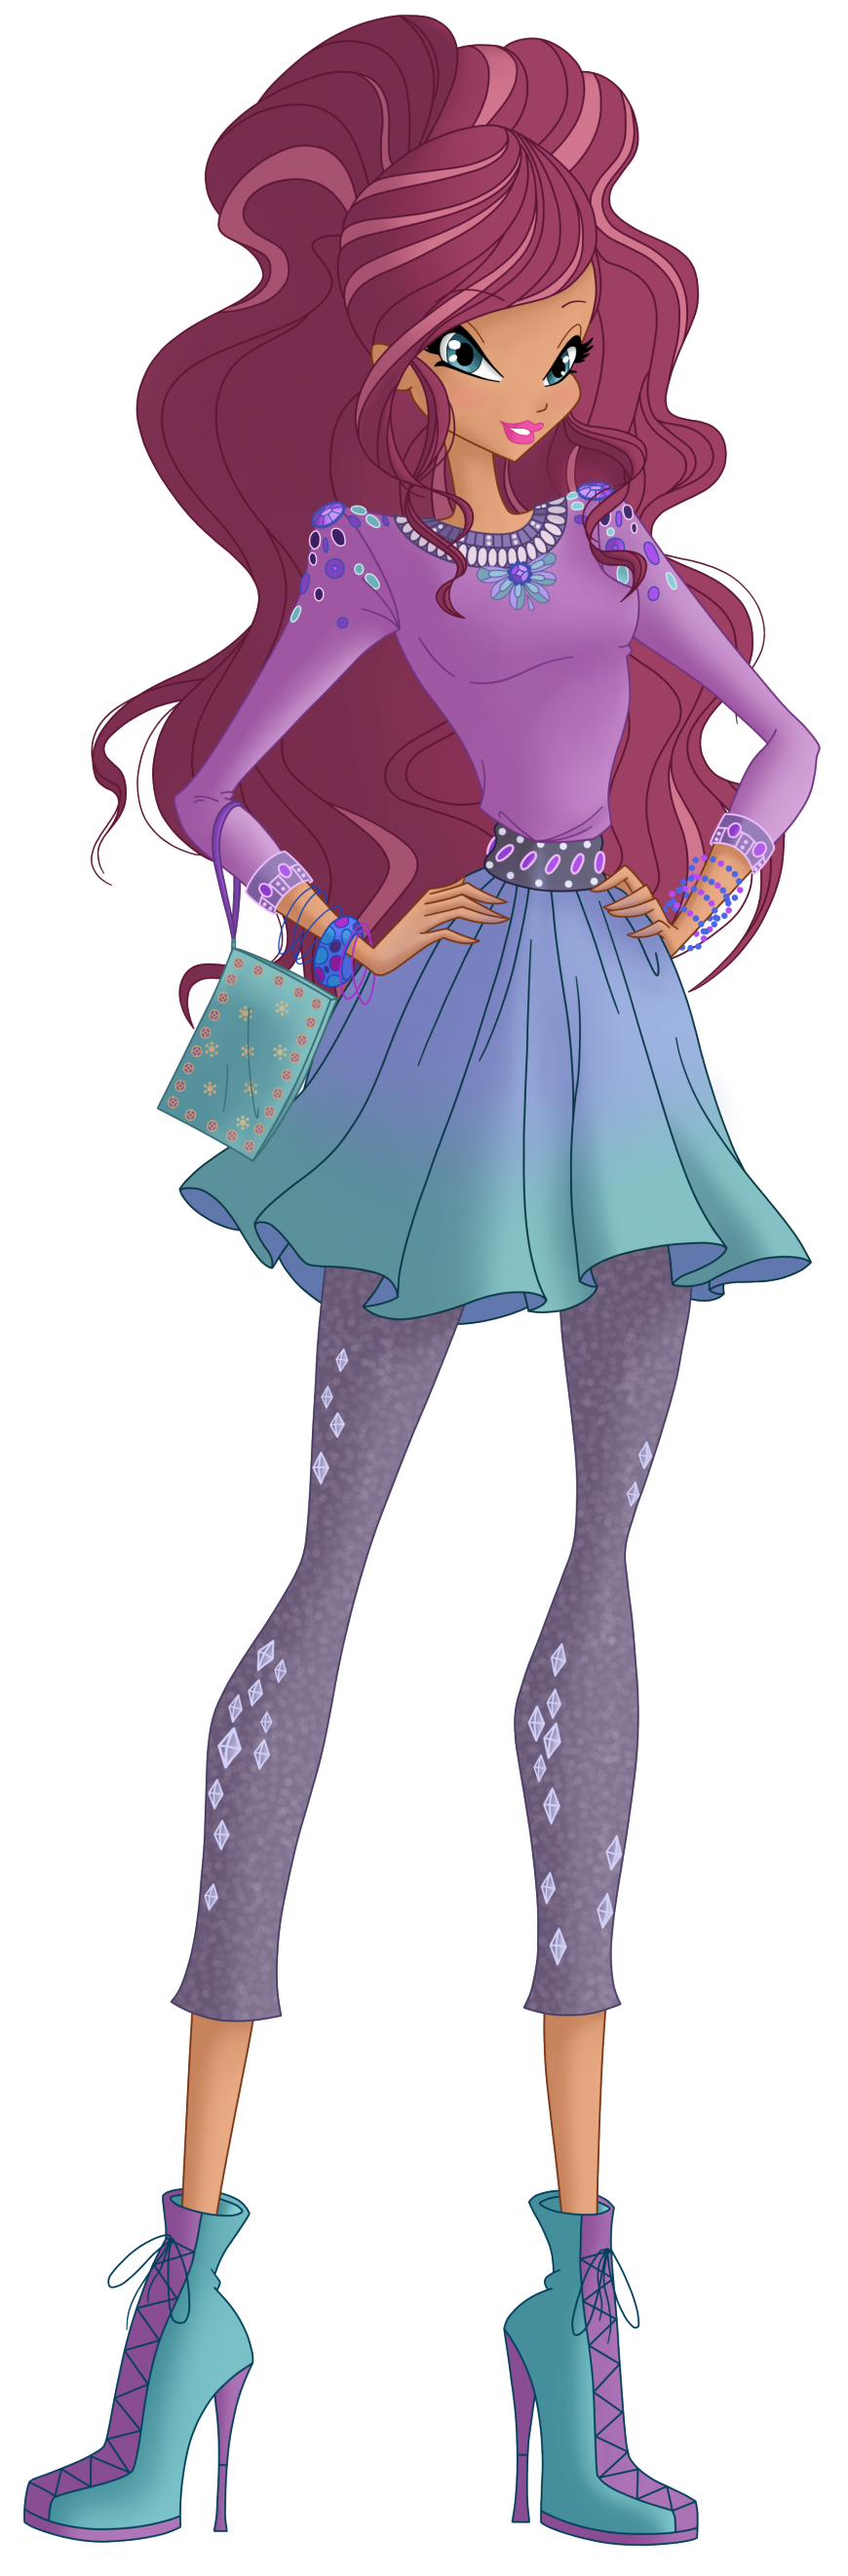 Layla World of Winx casual style